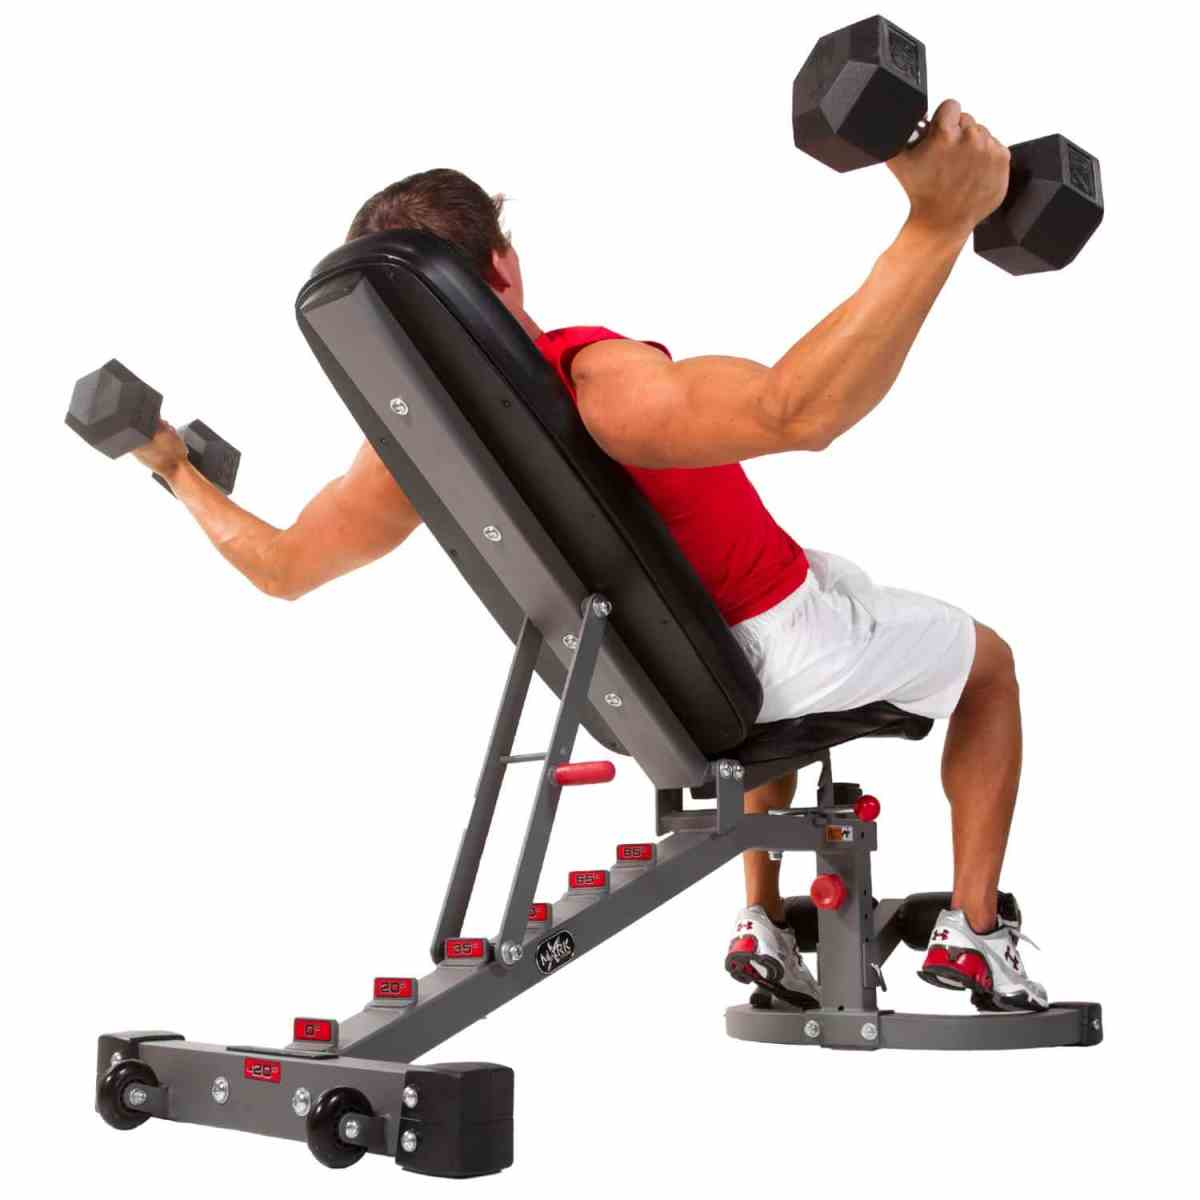 Top 10 Best Adjustable Benches Weight Training In 2015 Reviews